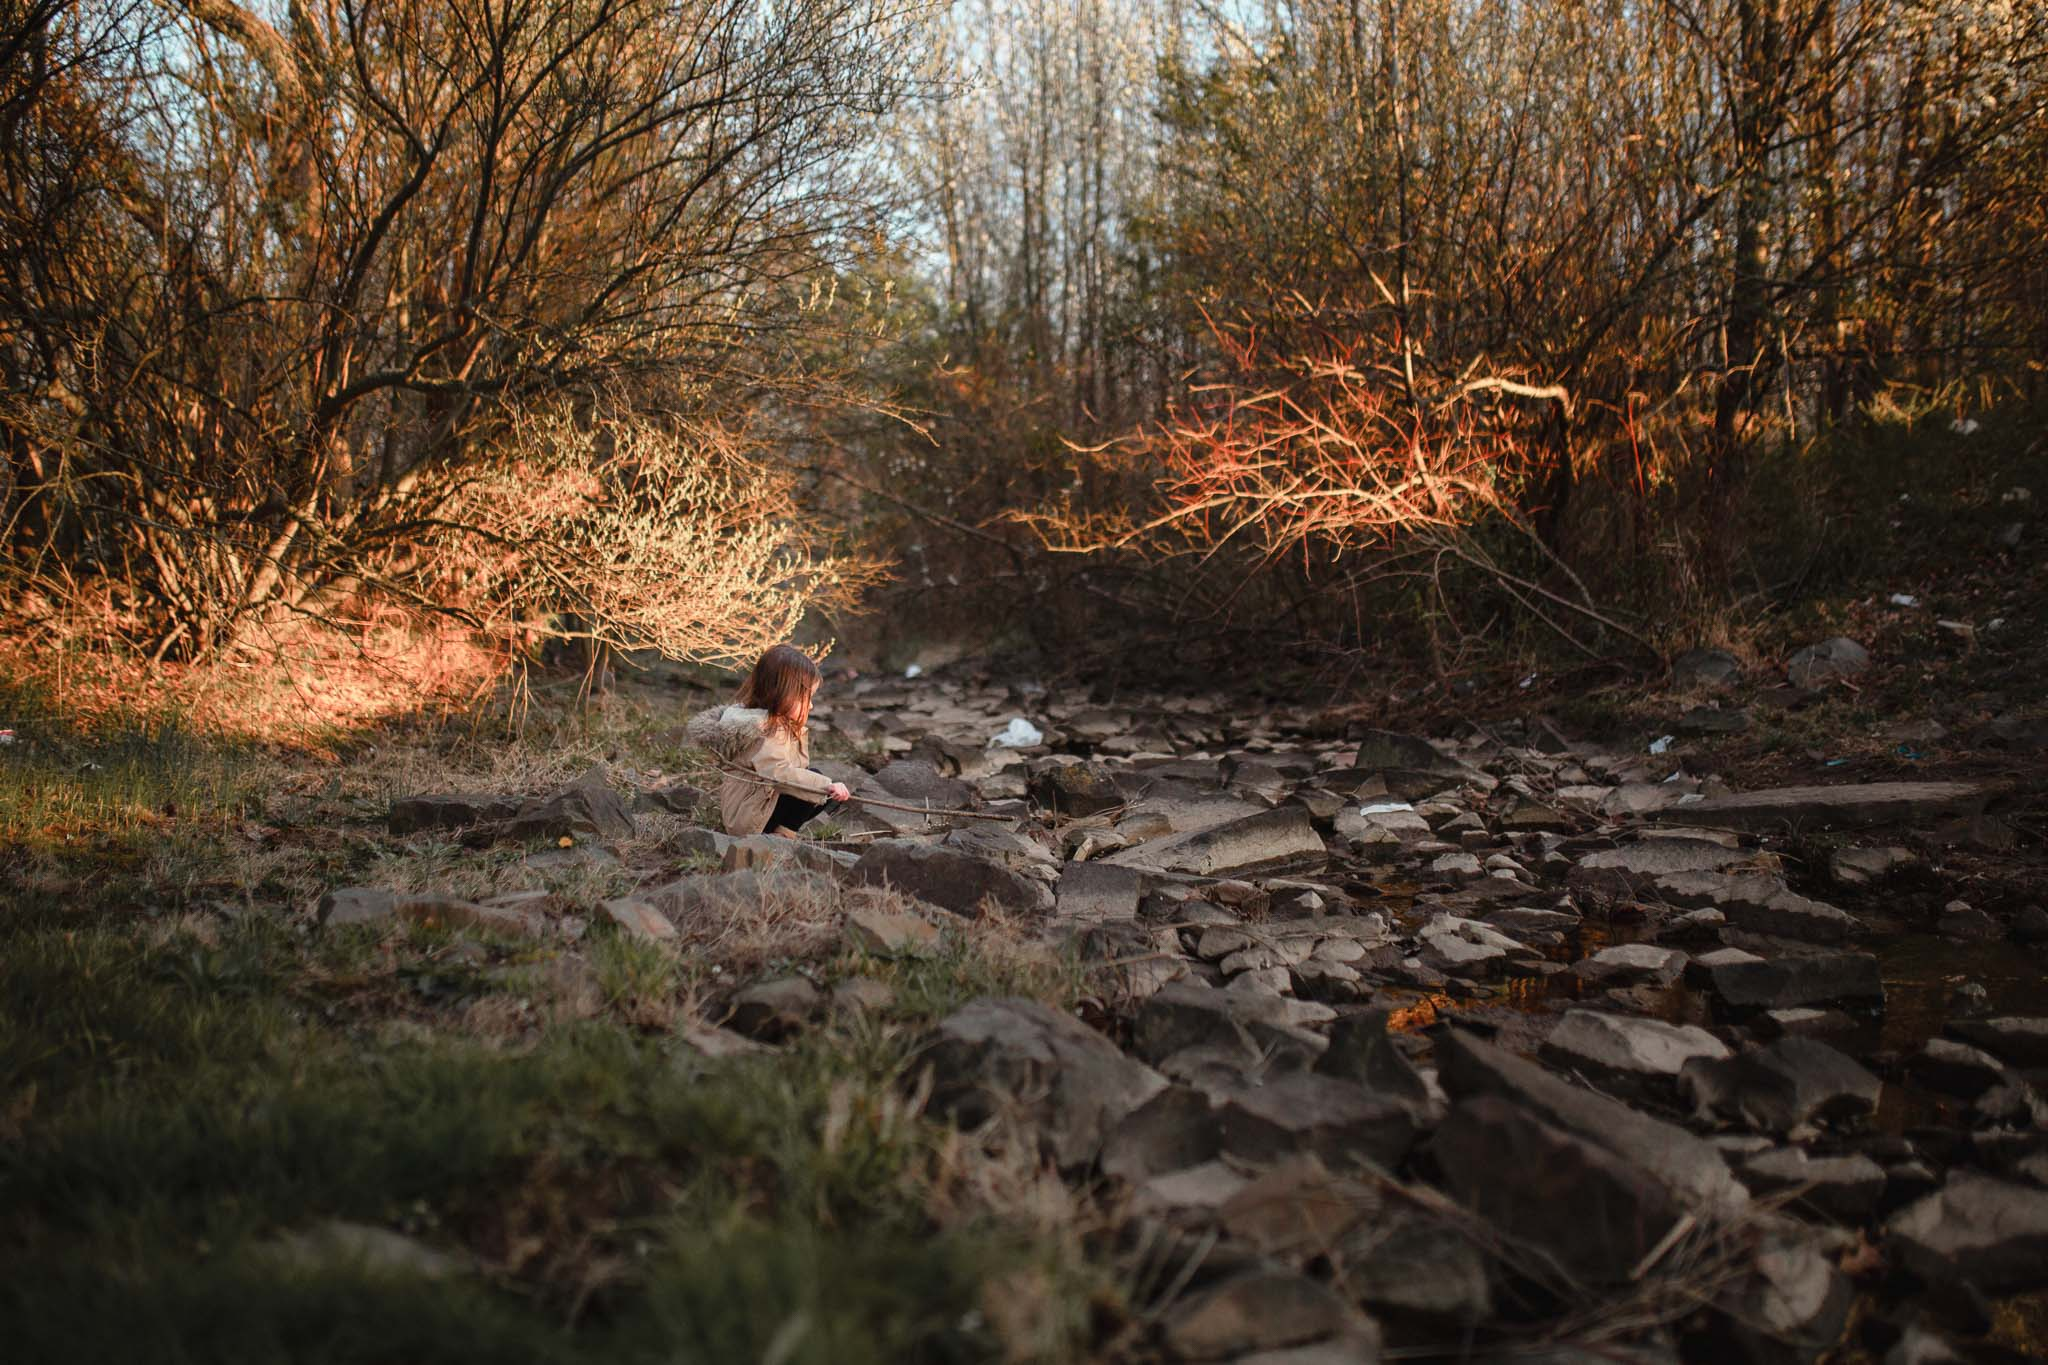 Toddler in a brown coat sits near a creek and uses a stick to move some rocks in Ashburn, Virginia